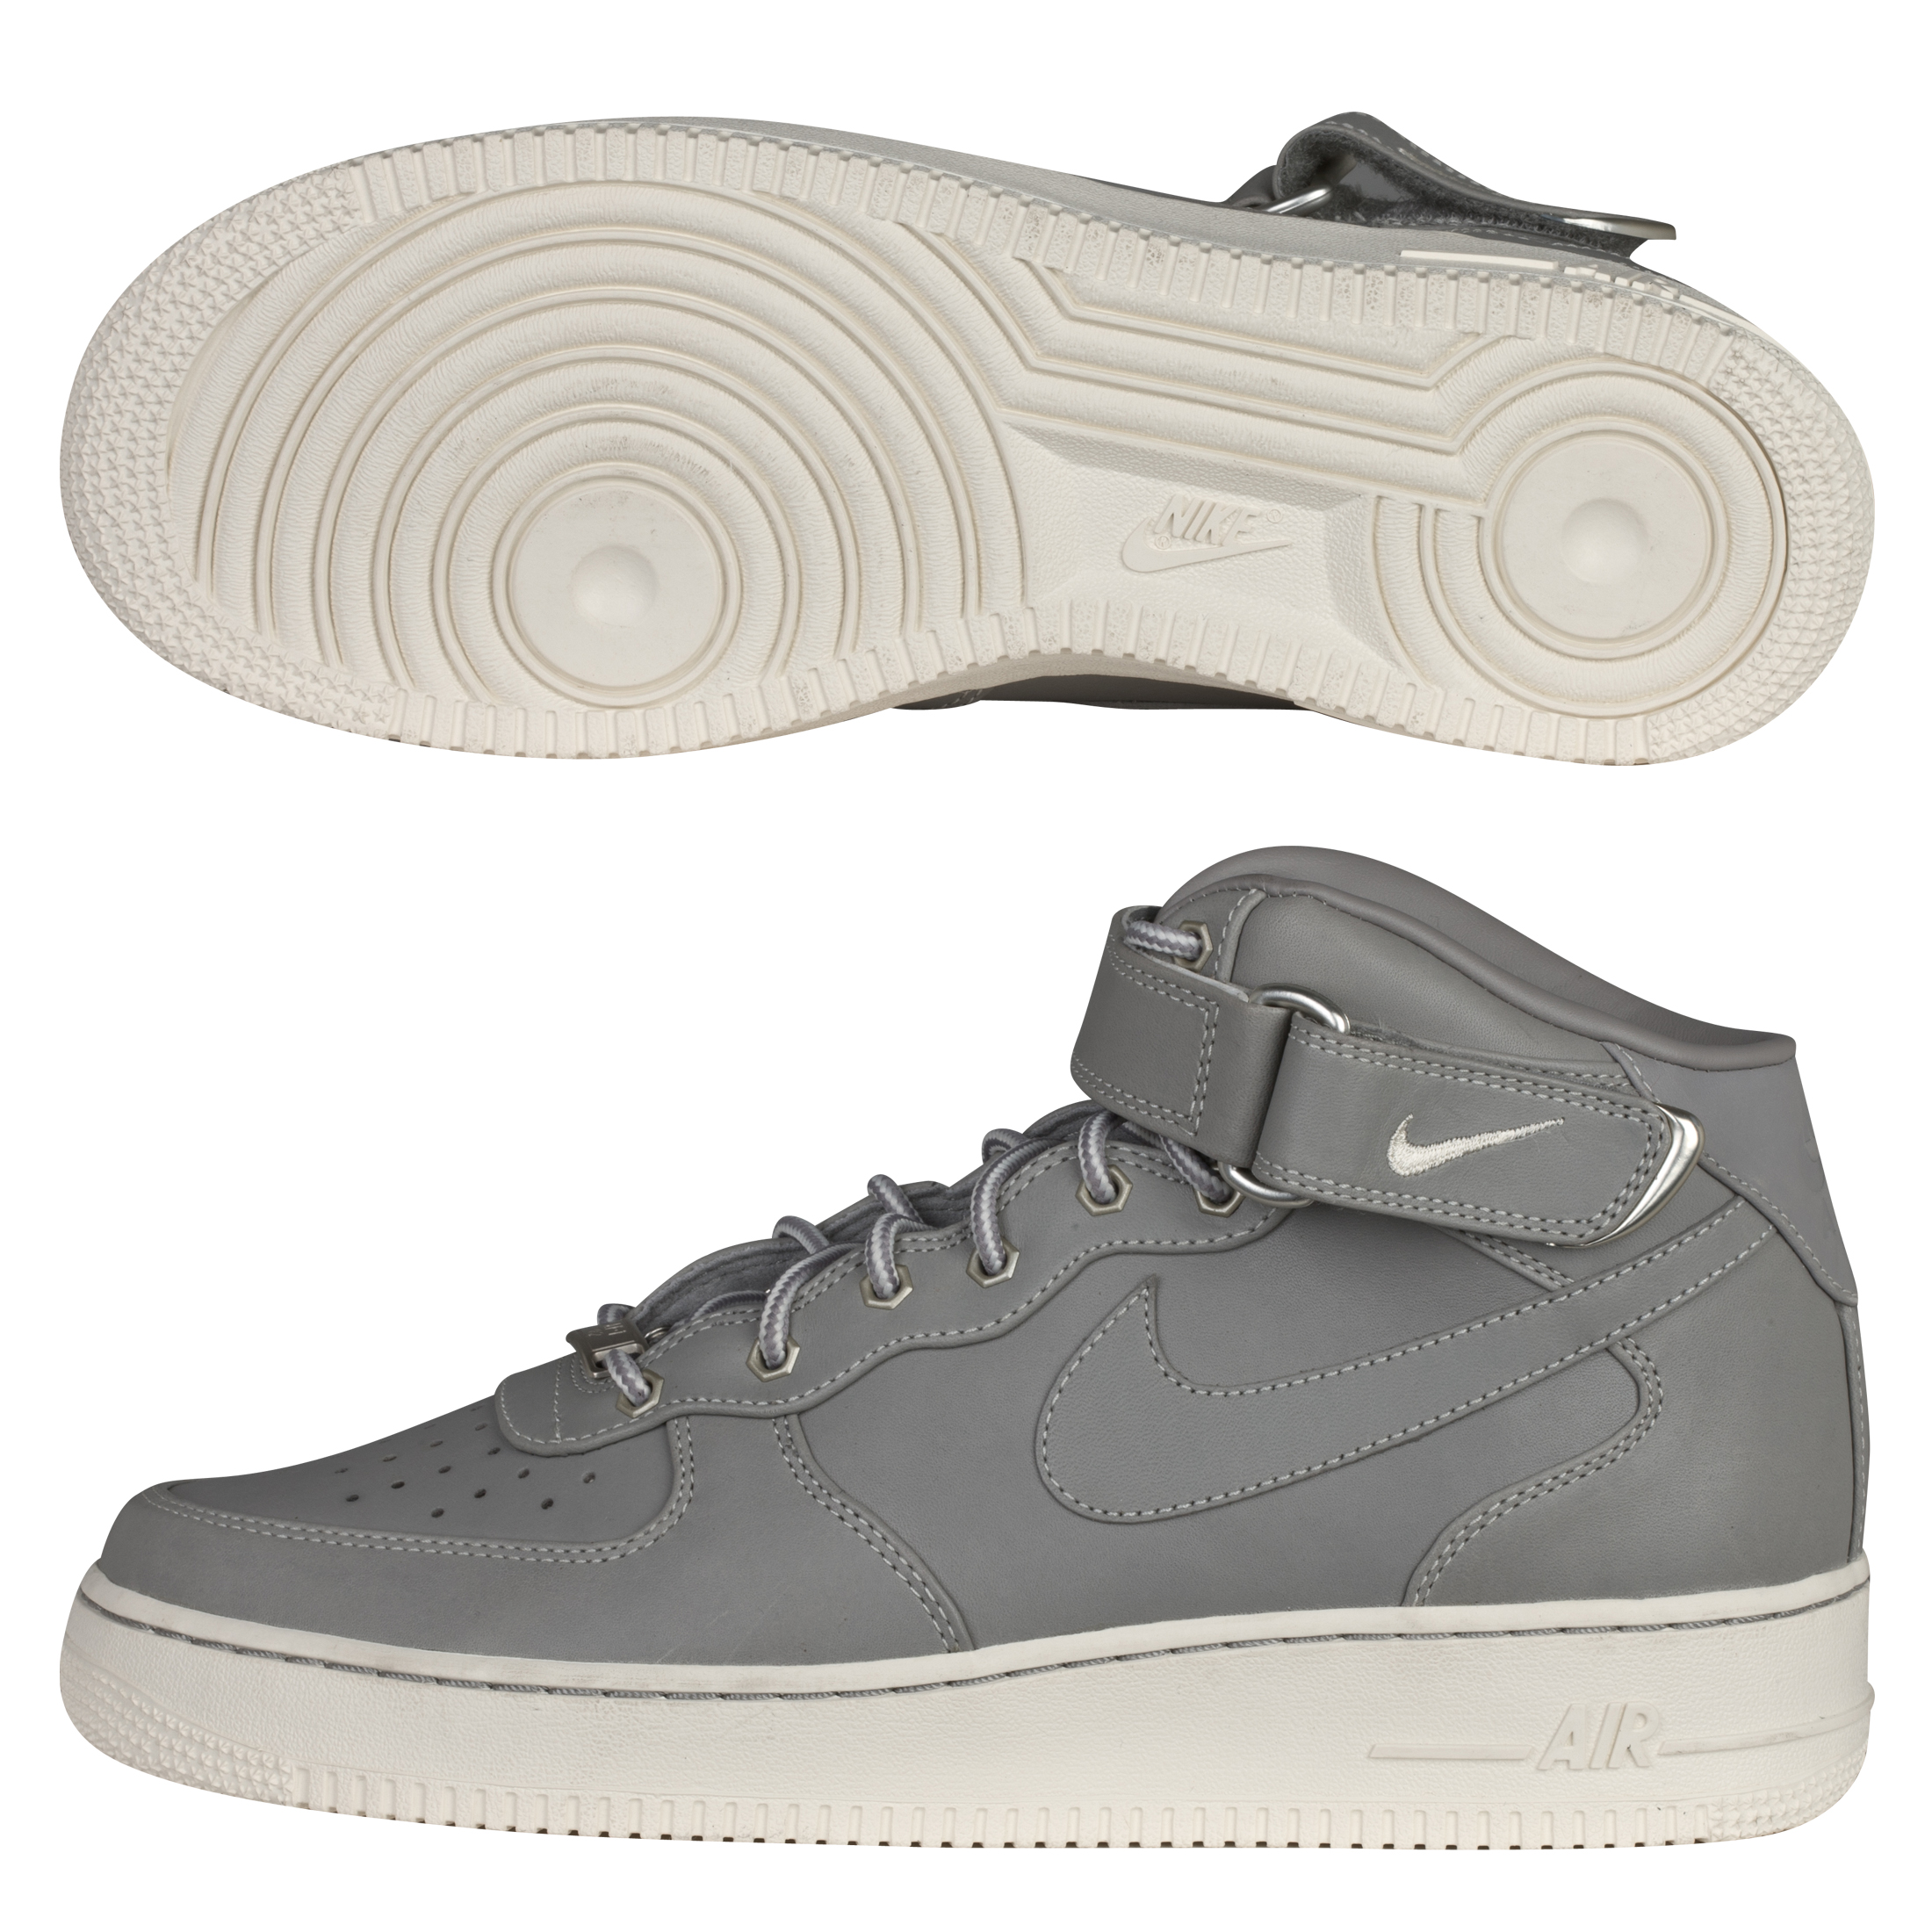 Nike Air Force 1 Mid '07 Premium Trainers - Medium Grey